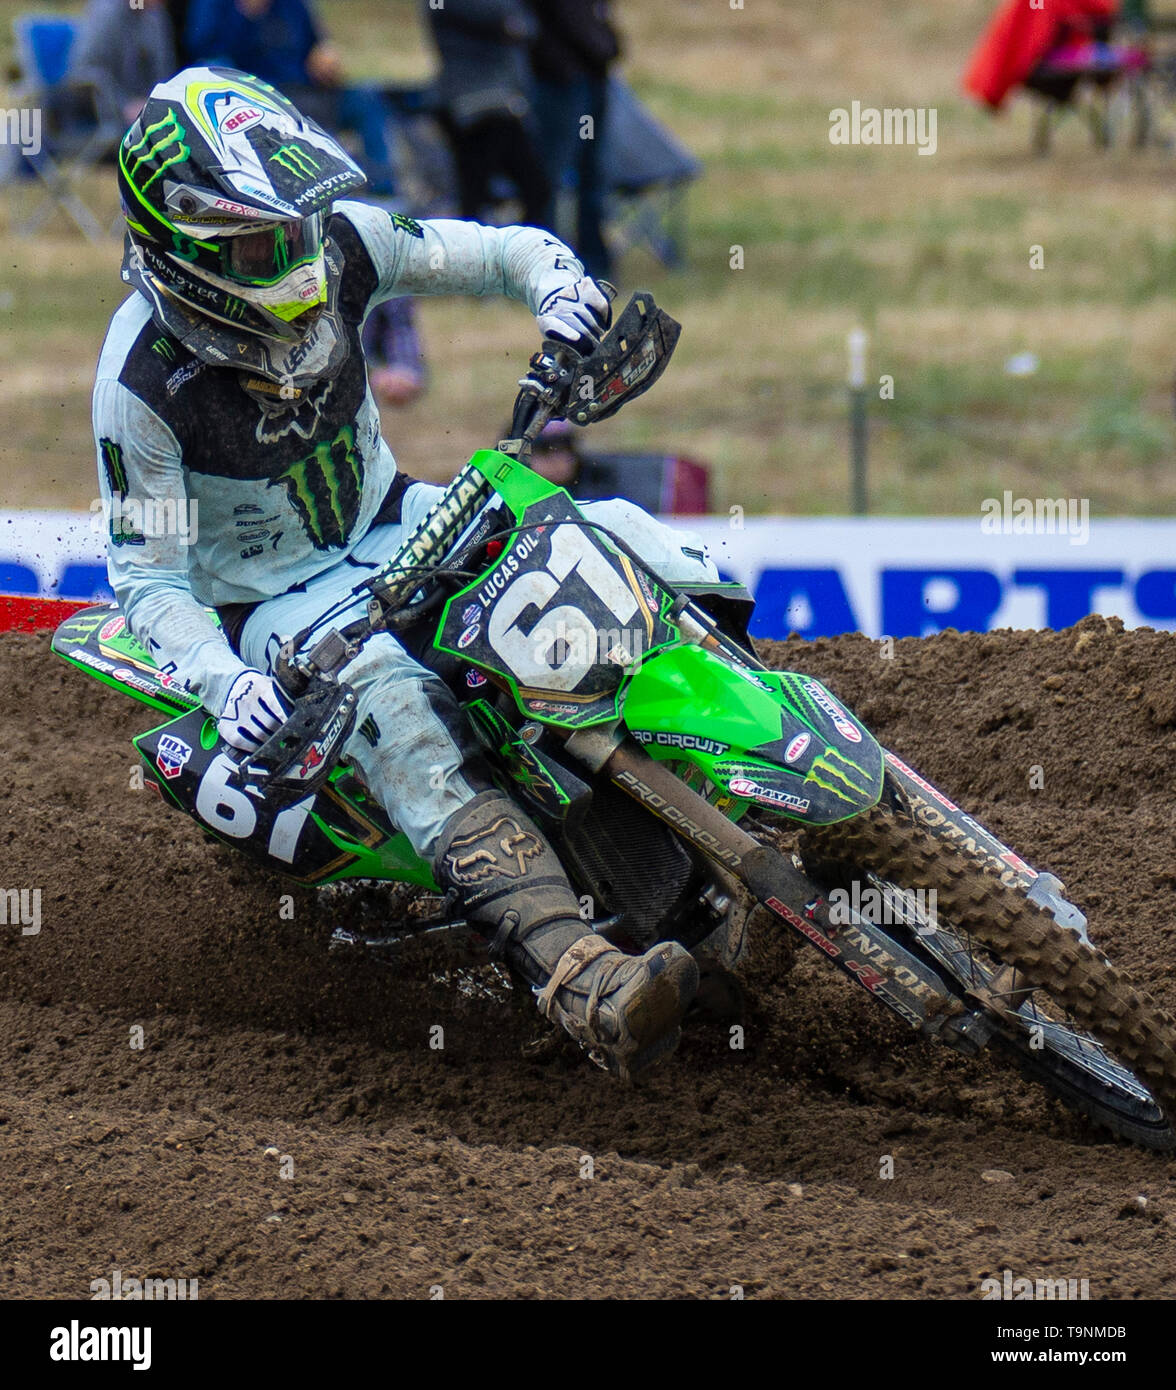 Rancho Cordova, CA U.S. 18th May, 2019. A. : # 61 Garrett Marchbanks coming out of section 20 during the Lucas Oil Pro Motocross Championship 250 class moto # 1 at Hangtown Motocross Classic Rancho Cordova, CA Thurman James/CSM/Alamy Live News - Stock Image